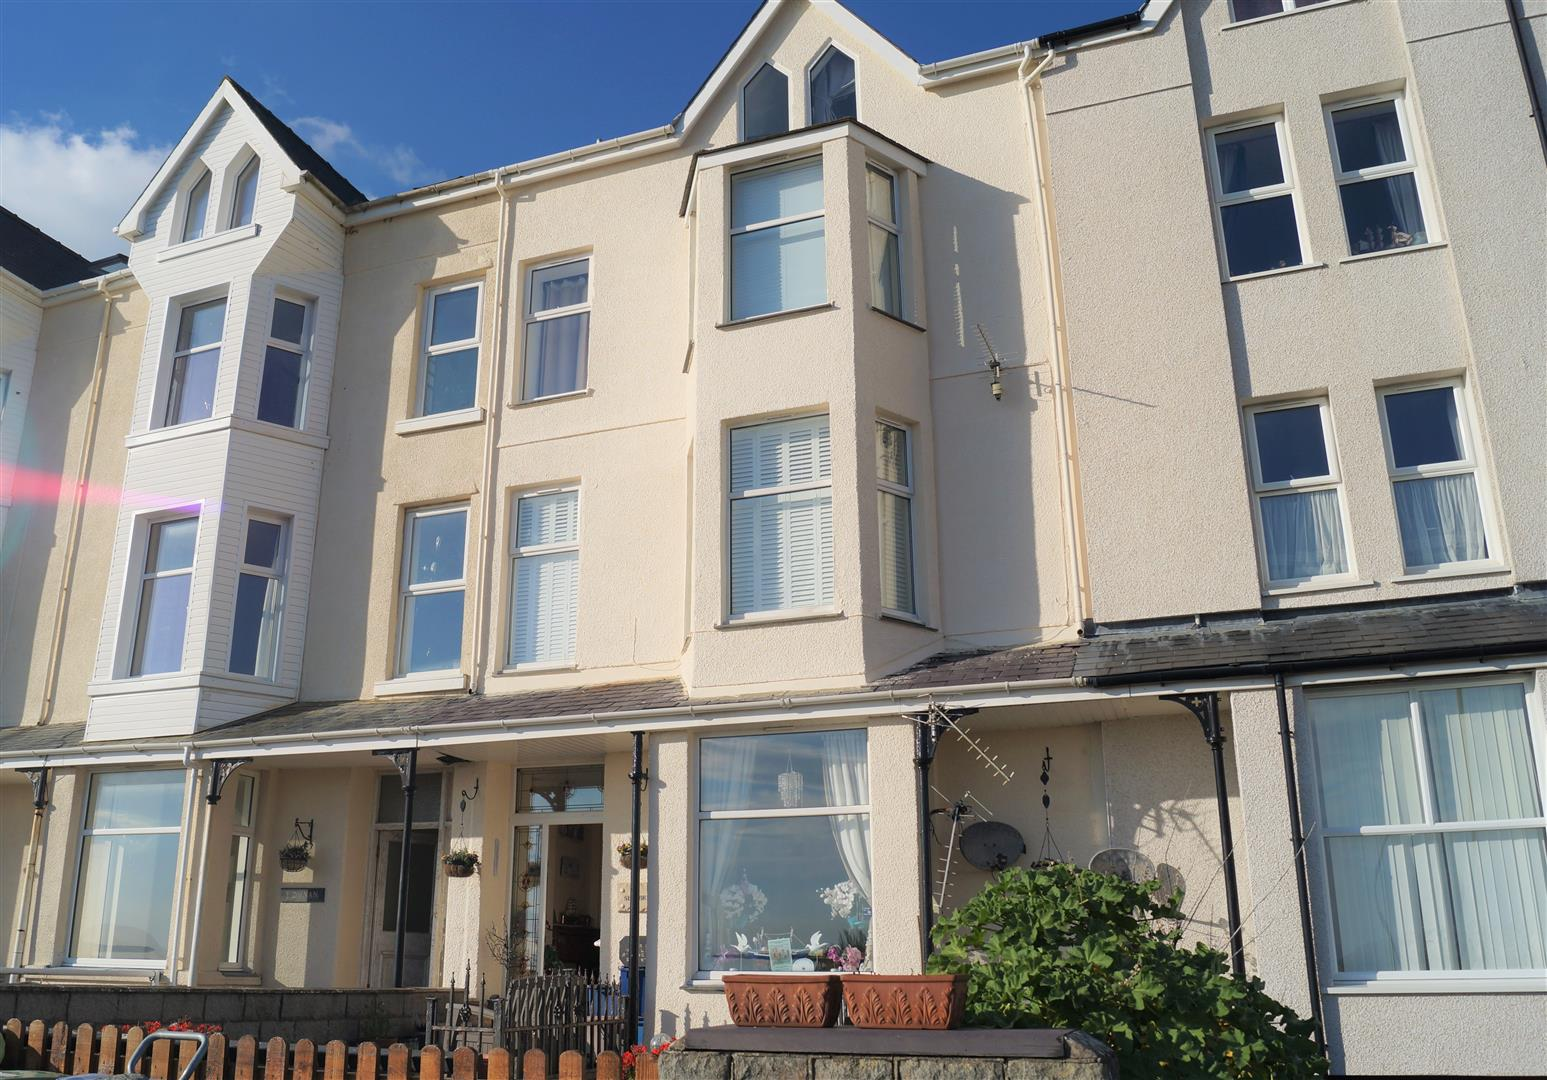 Sea Breeze, South Beach, Pwllheli - £105,000